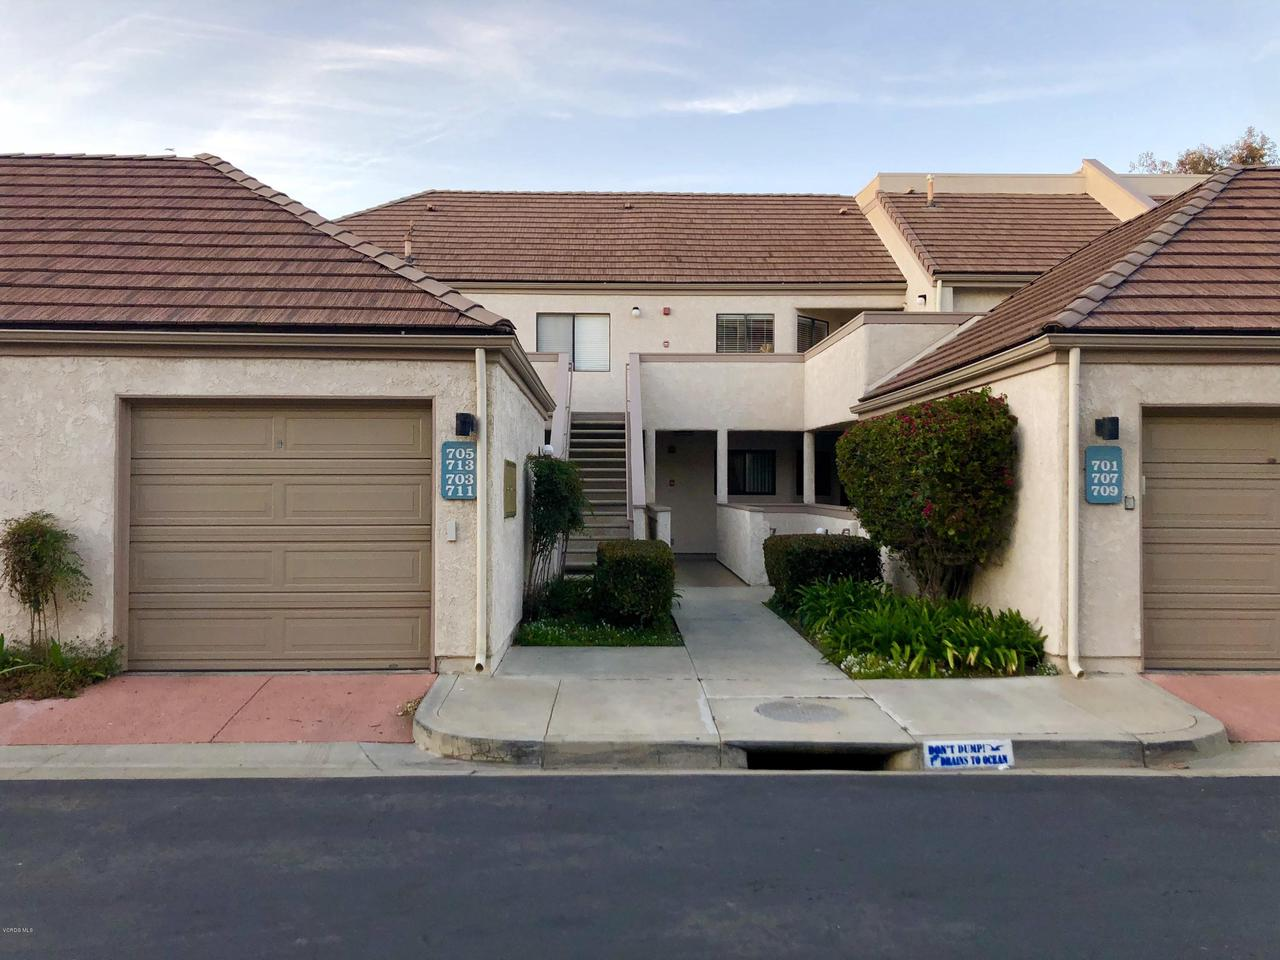 707 ISLAND VIEW, Port Hueneme, CA 93041 - FRONT VIEW